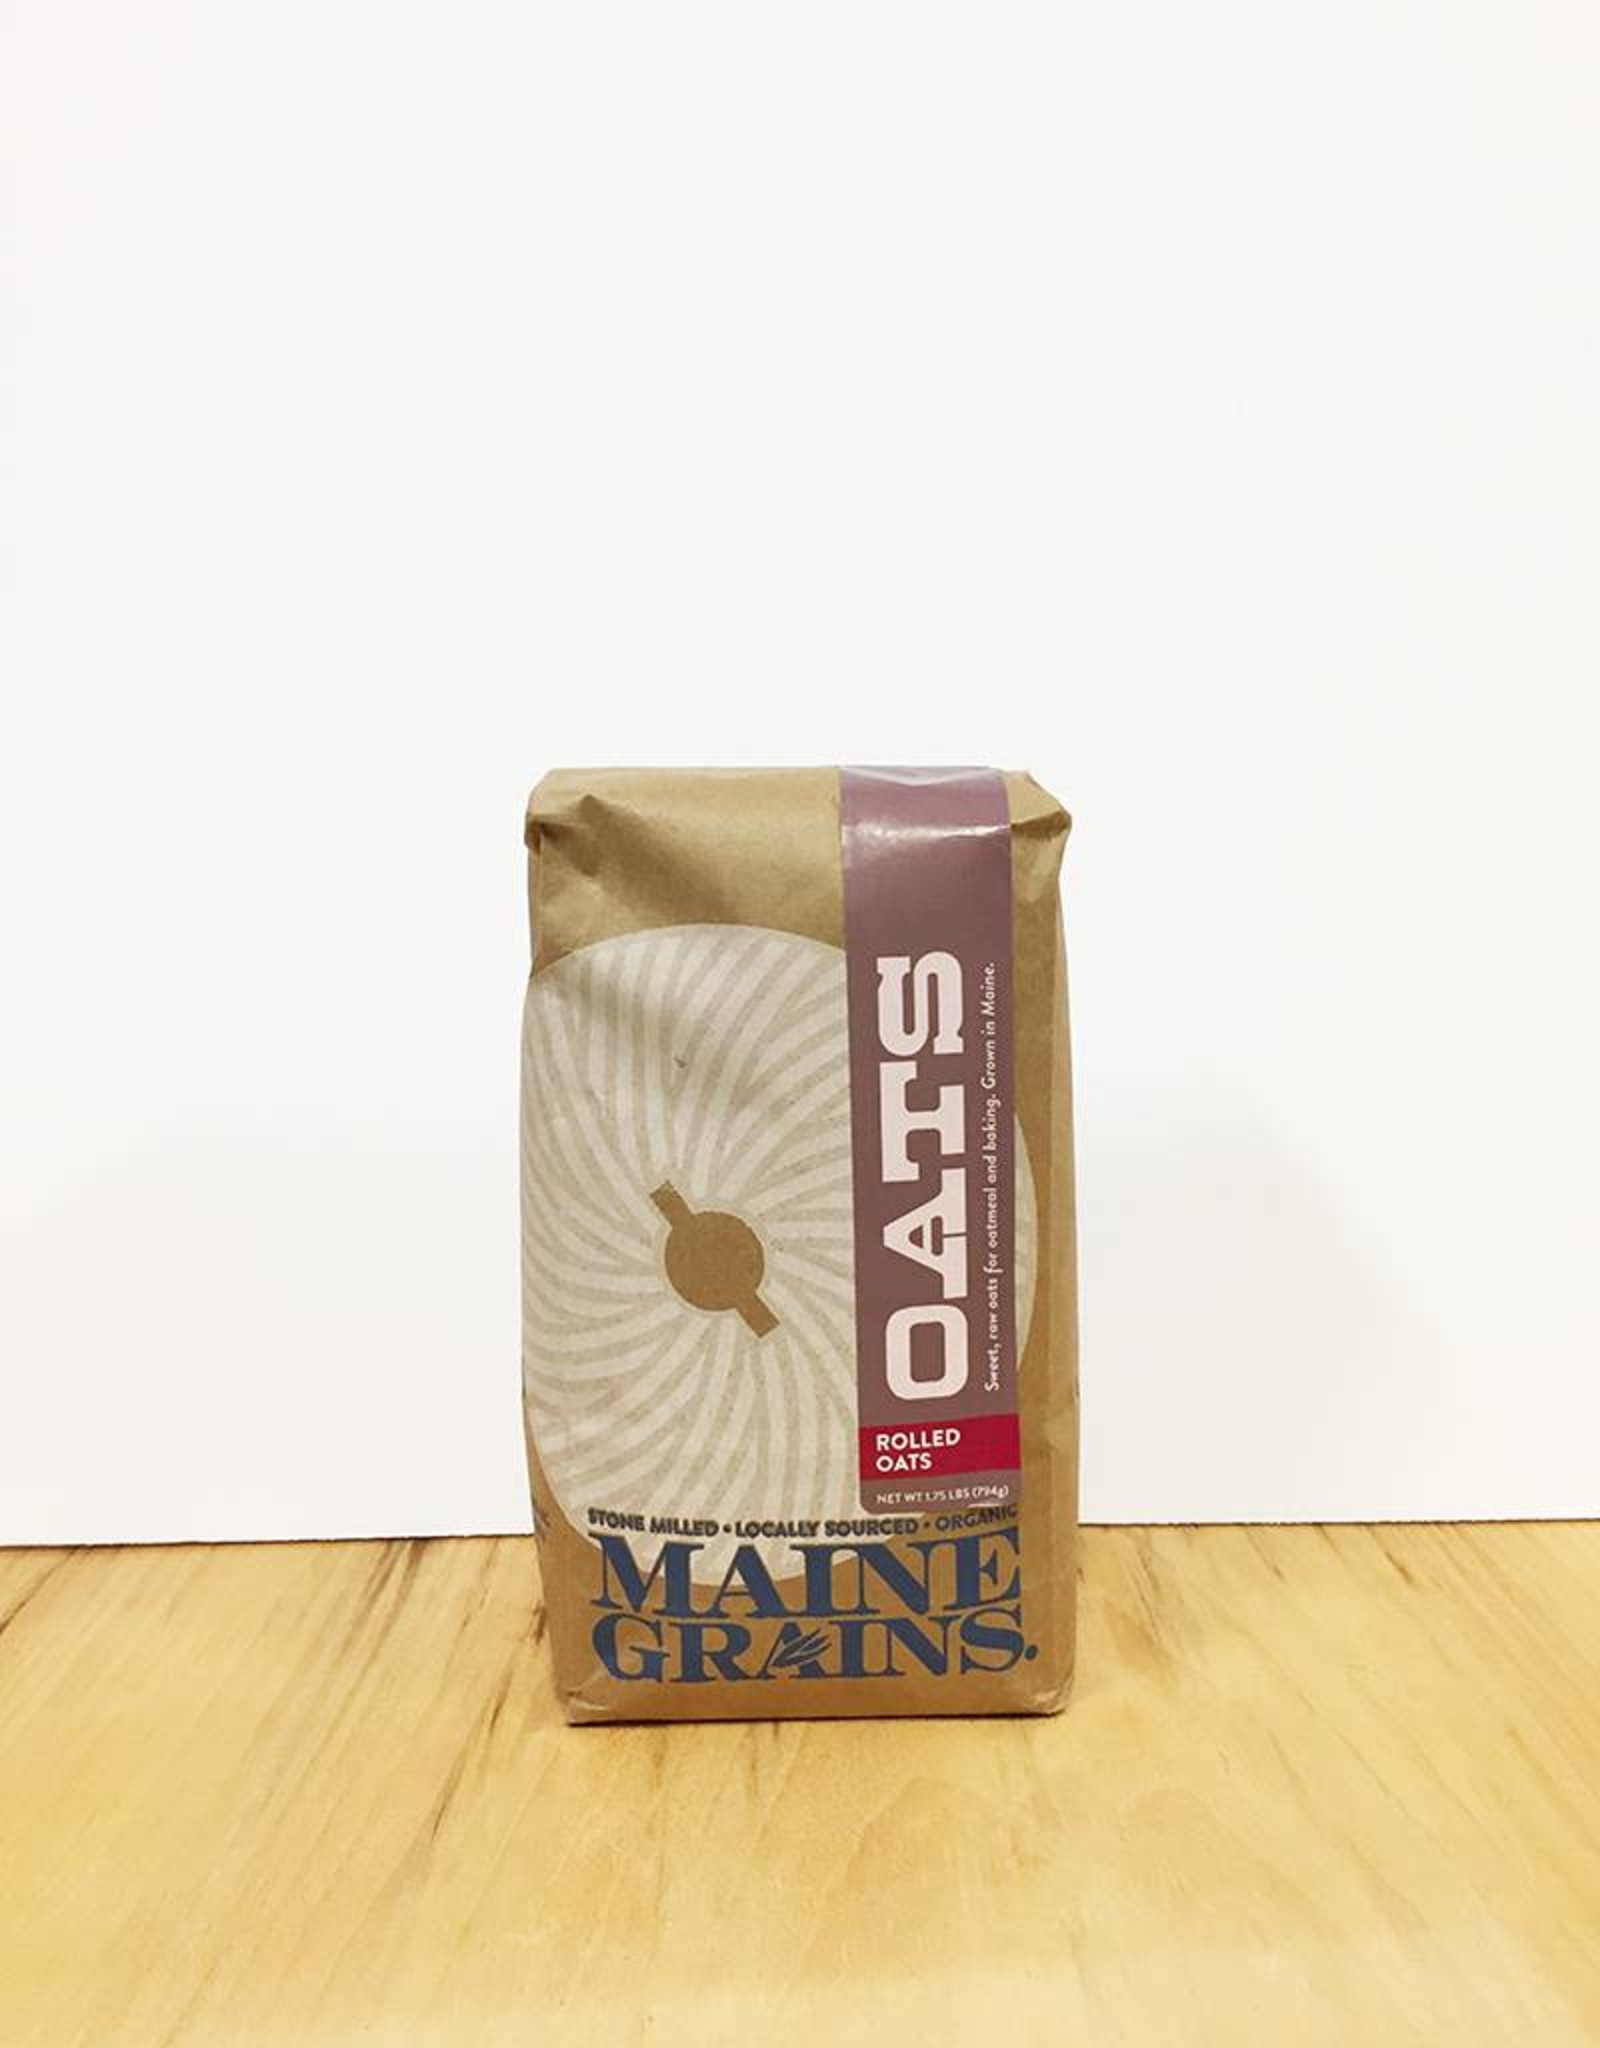 Maine Grains Maine Grains Organic Rolled Oats 1.75lbs